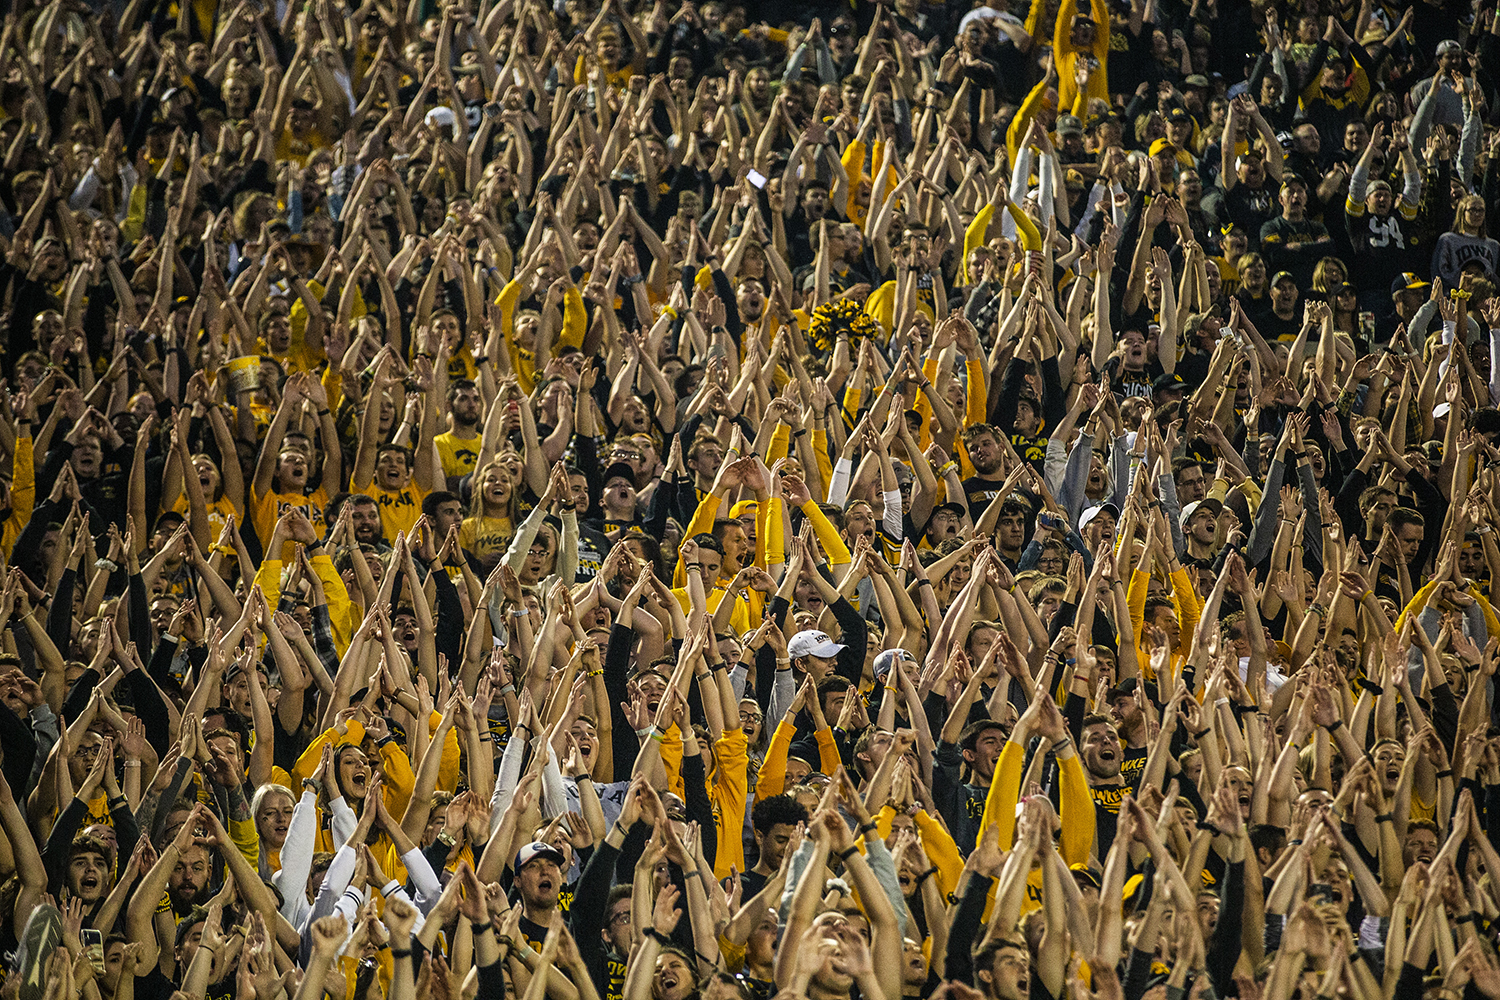 Fans+chant+the+%22I%22+after+an+Iowa+touchdown+during+the+Iowa+football+game+against+Miami+%28Ohio%29+at+Kinnick+Stadium+on+Saturday%2C+August+31%2C+2019.+The+Hawkeyes+defeated+the+Redhawks+38-14.